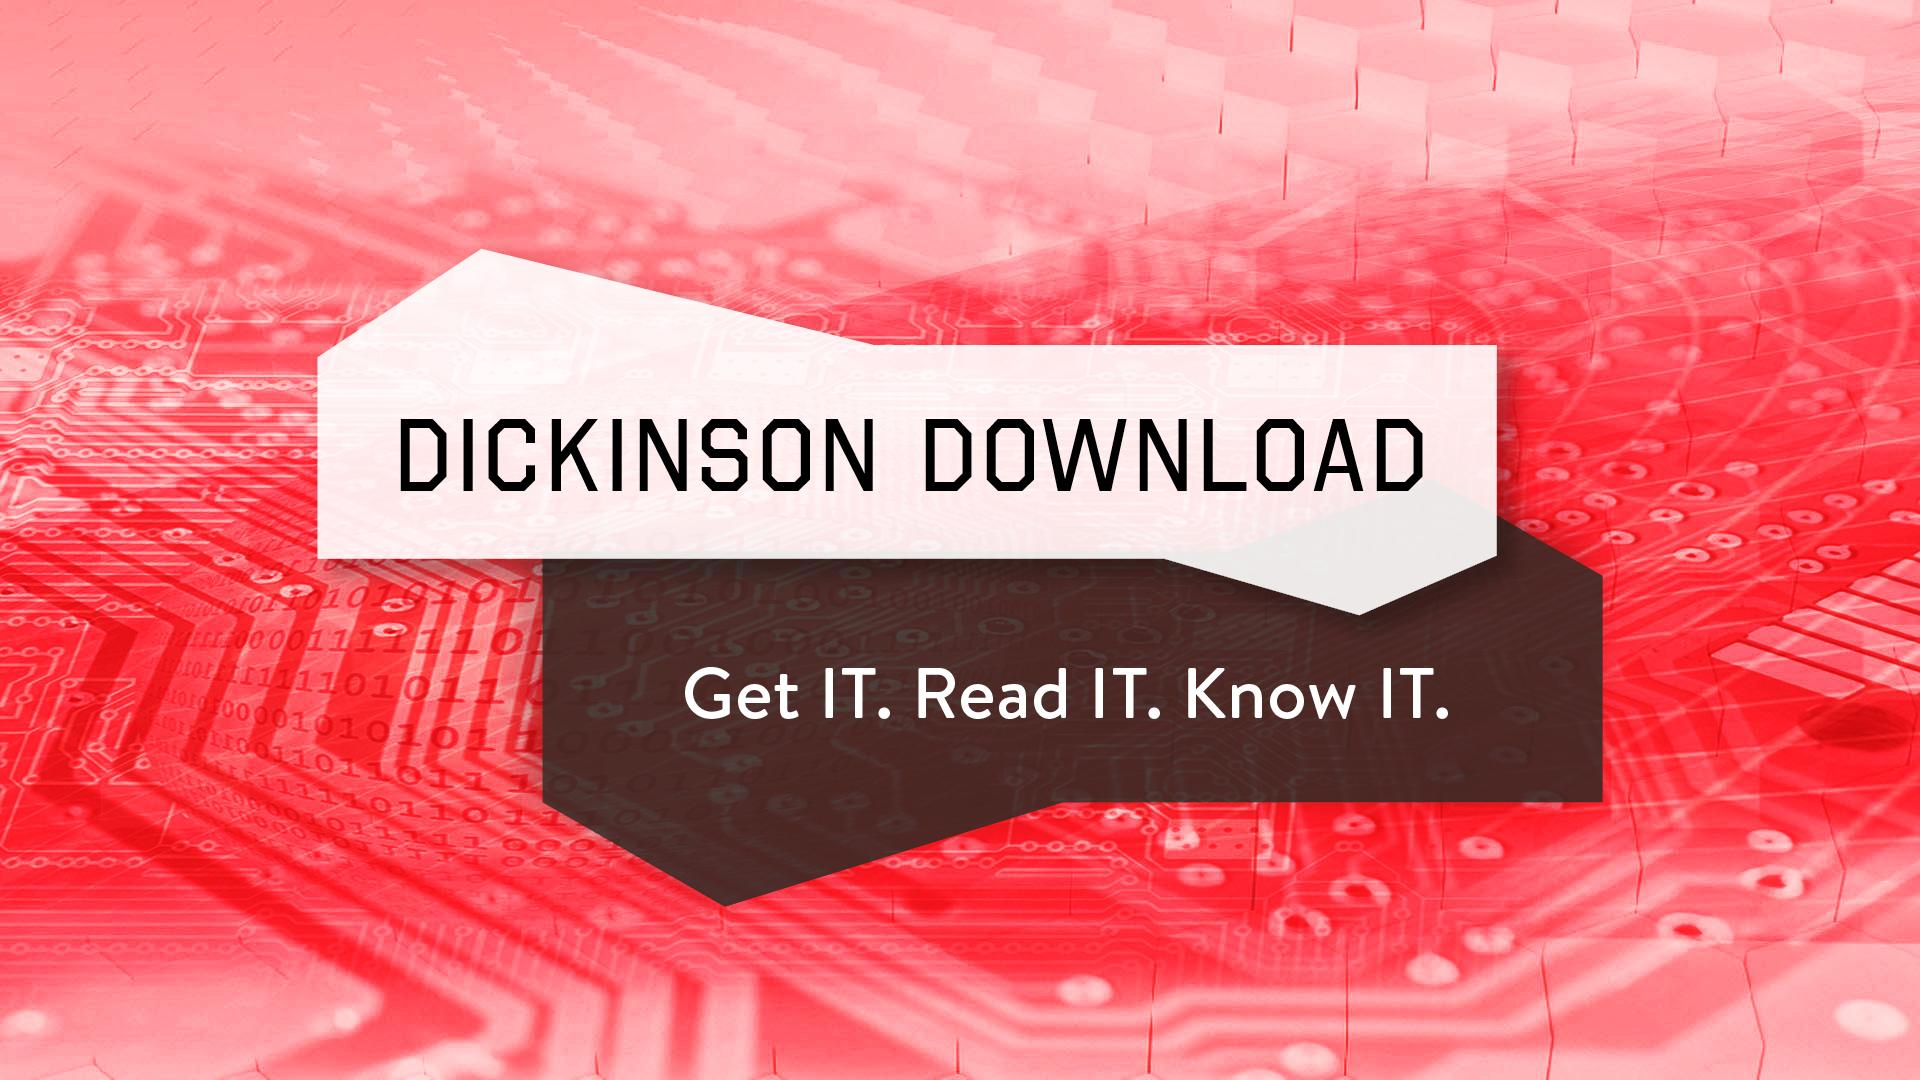 The Dickinson Download Masthead